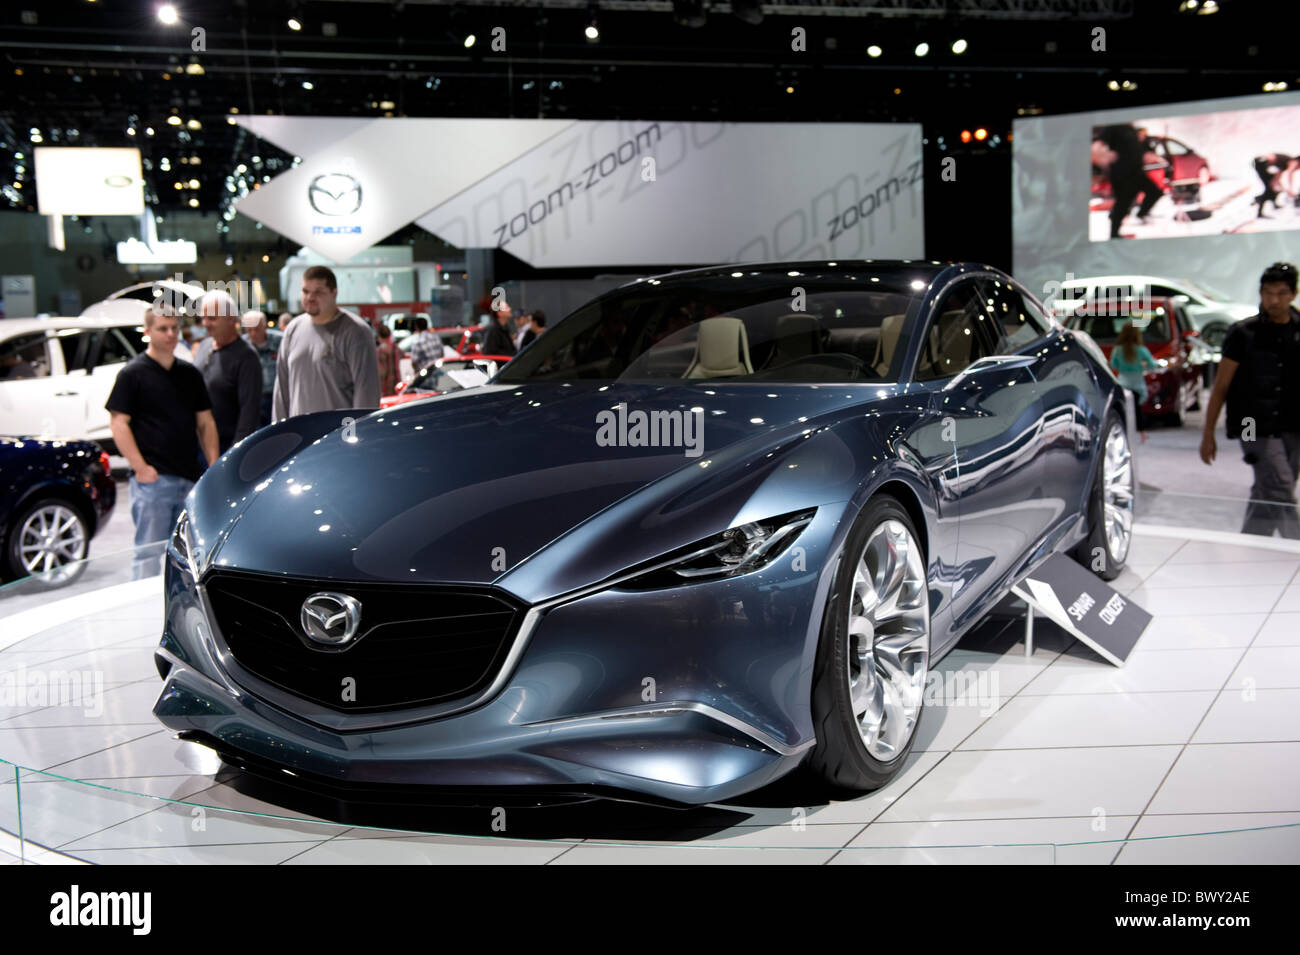 http://c8.alamy.com/comp/BWY2AE/mazda-shinari-concept-world-debut-at-the-2010-la-auto-show-in-the-BWY2AE.jpg